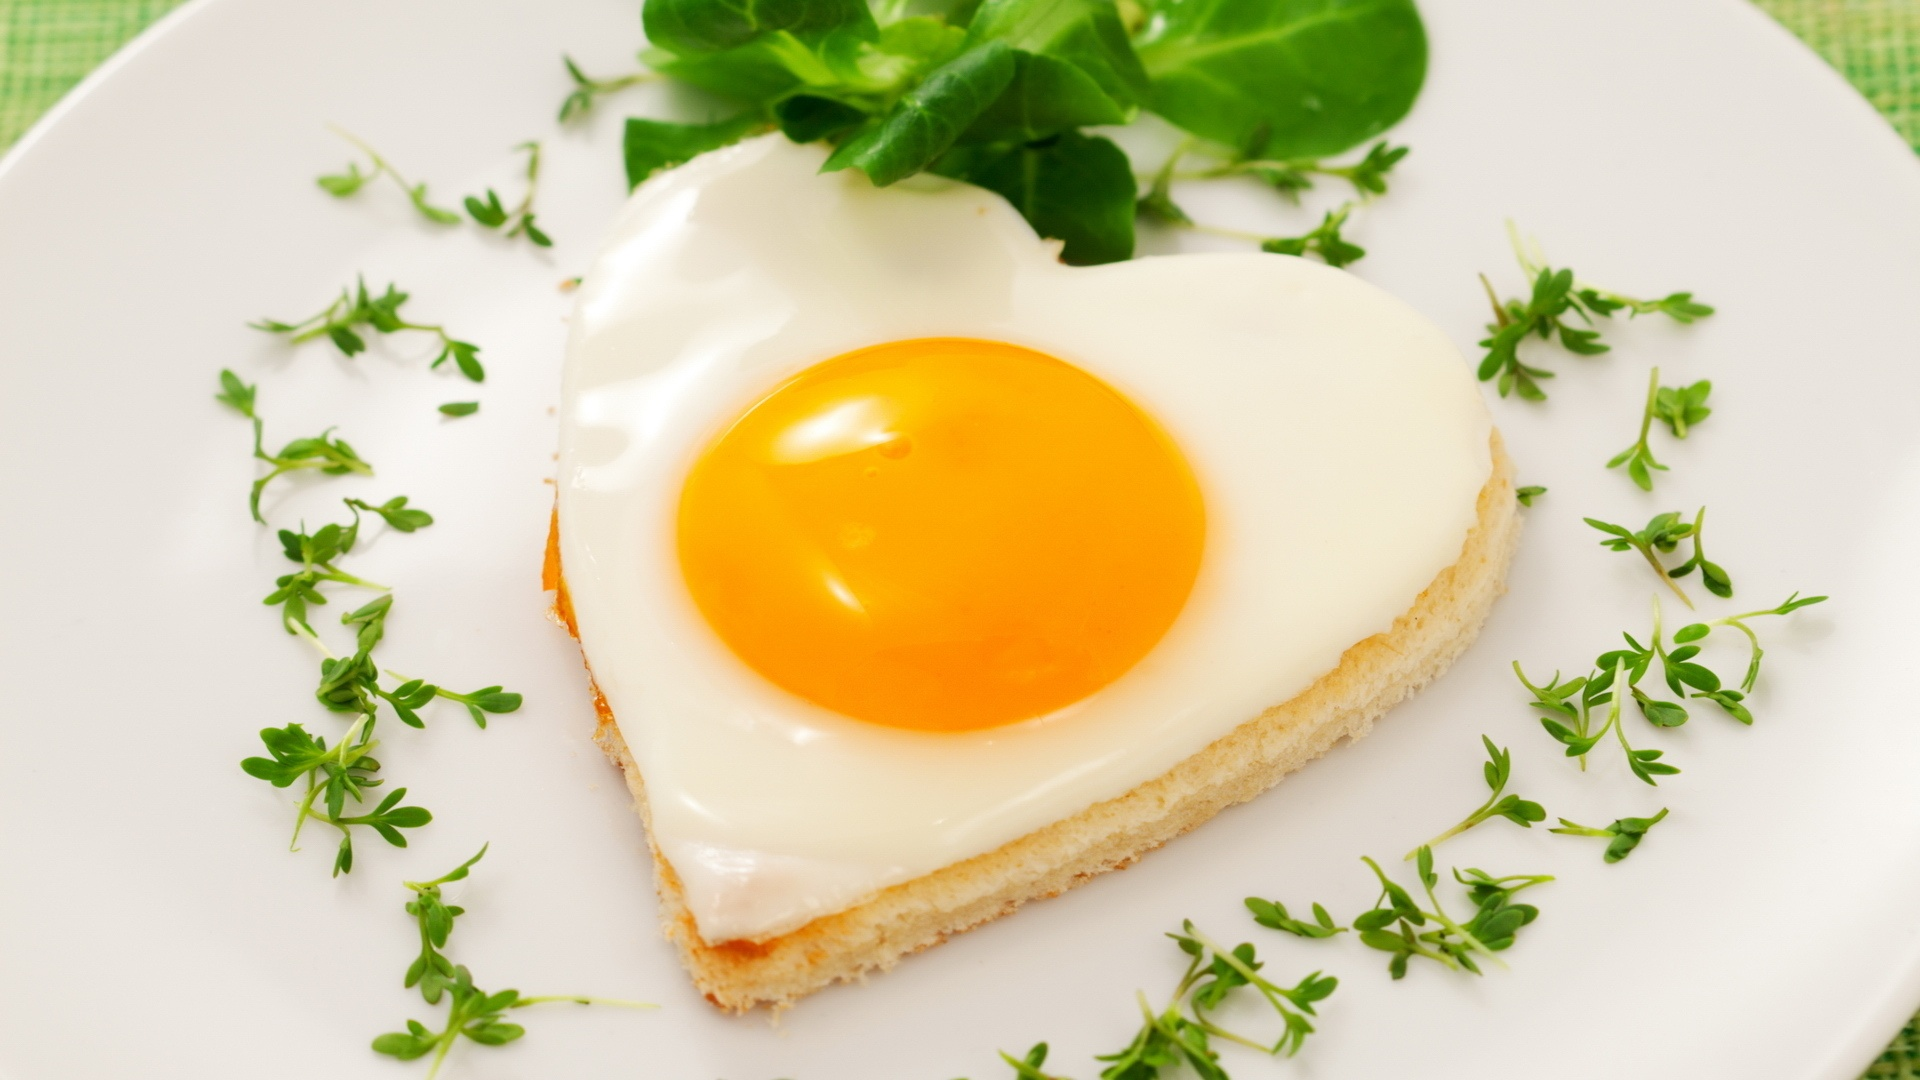 http://www.healthylivingandtravel.com/wp-content/uploads/2013/07/heart-shaped-egg-pastry-breakfast_1920x1080.jpg